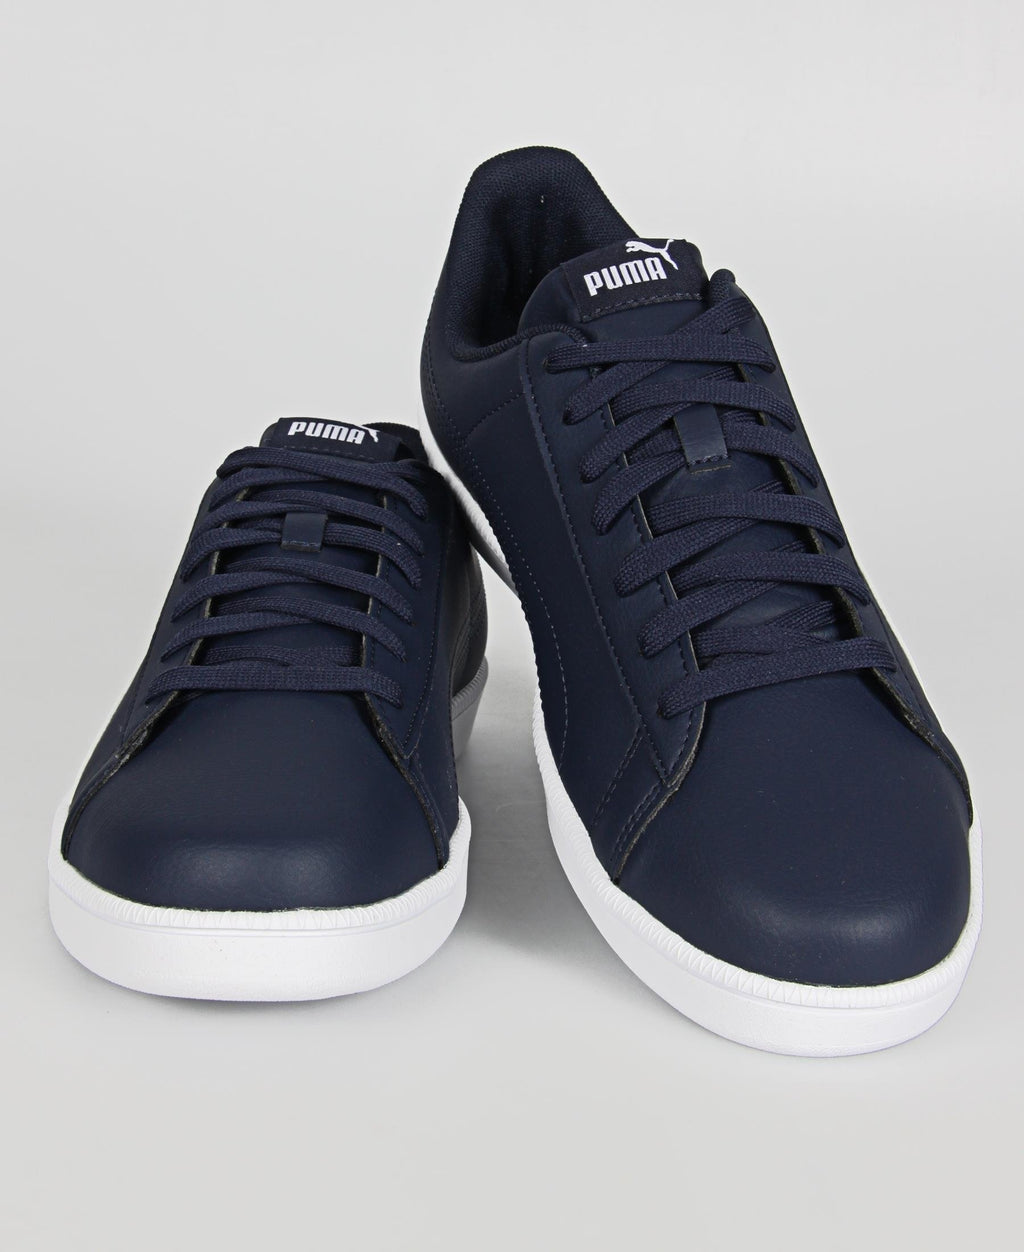 Men's Puma UP Sneakers - Navy